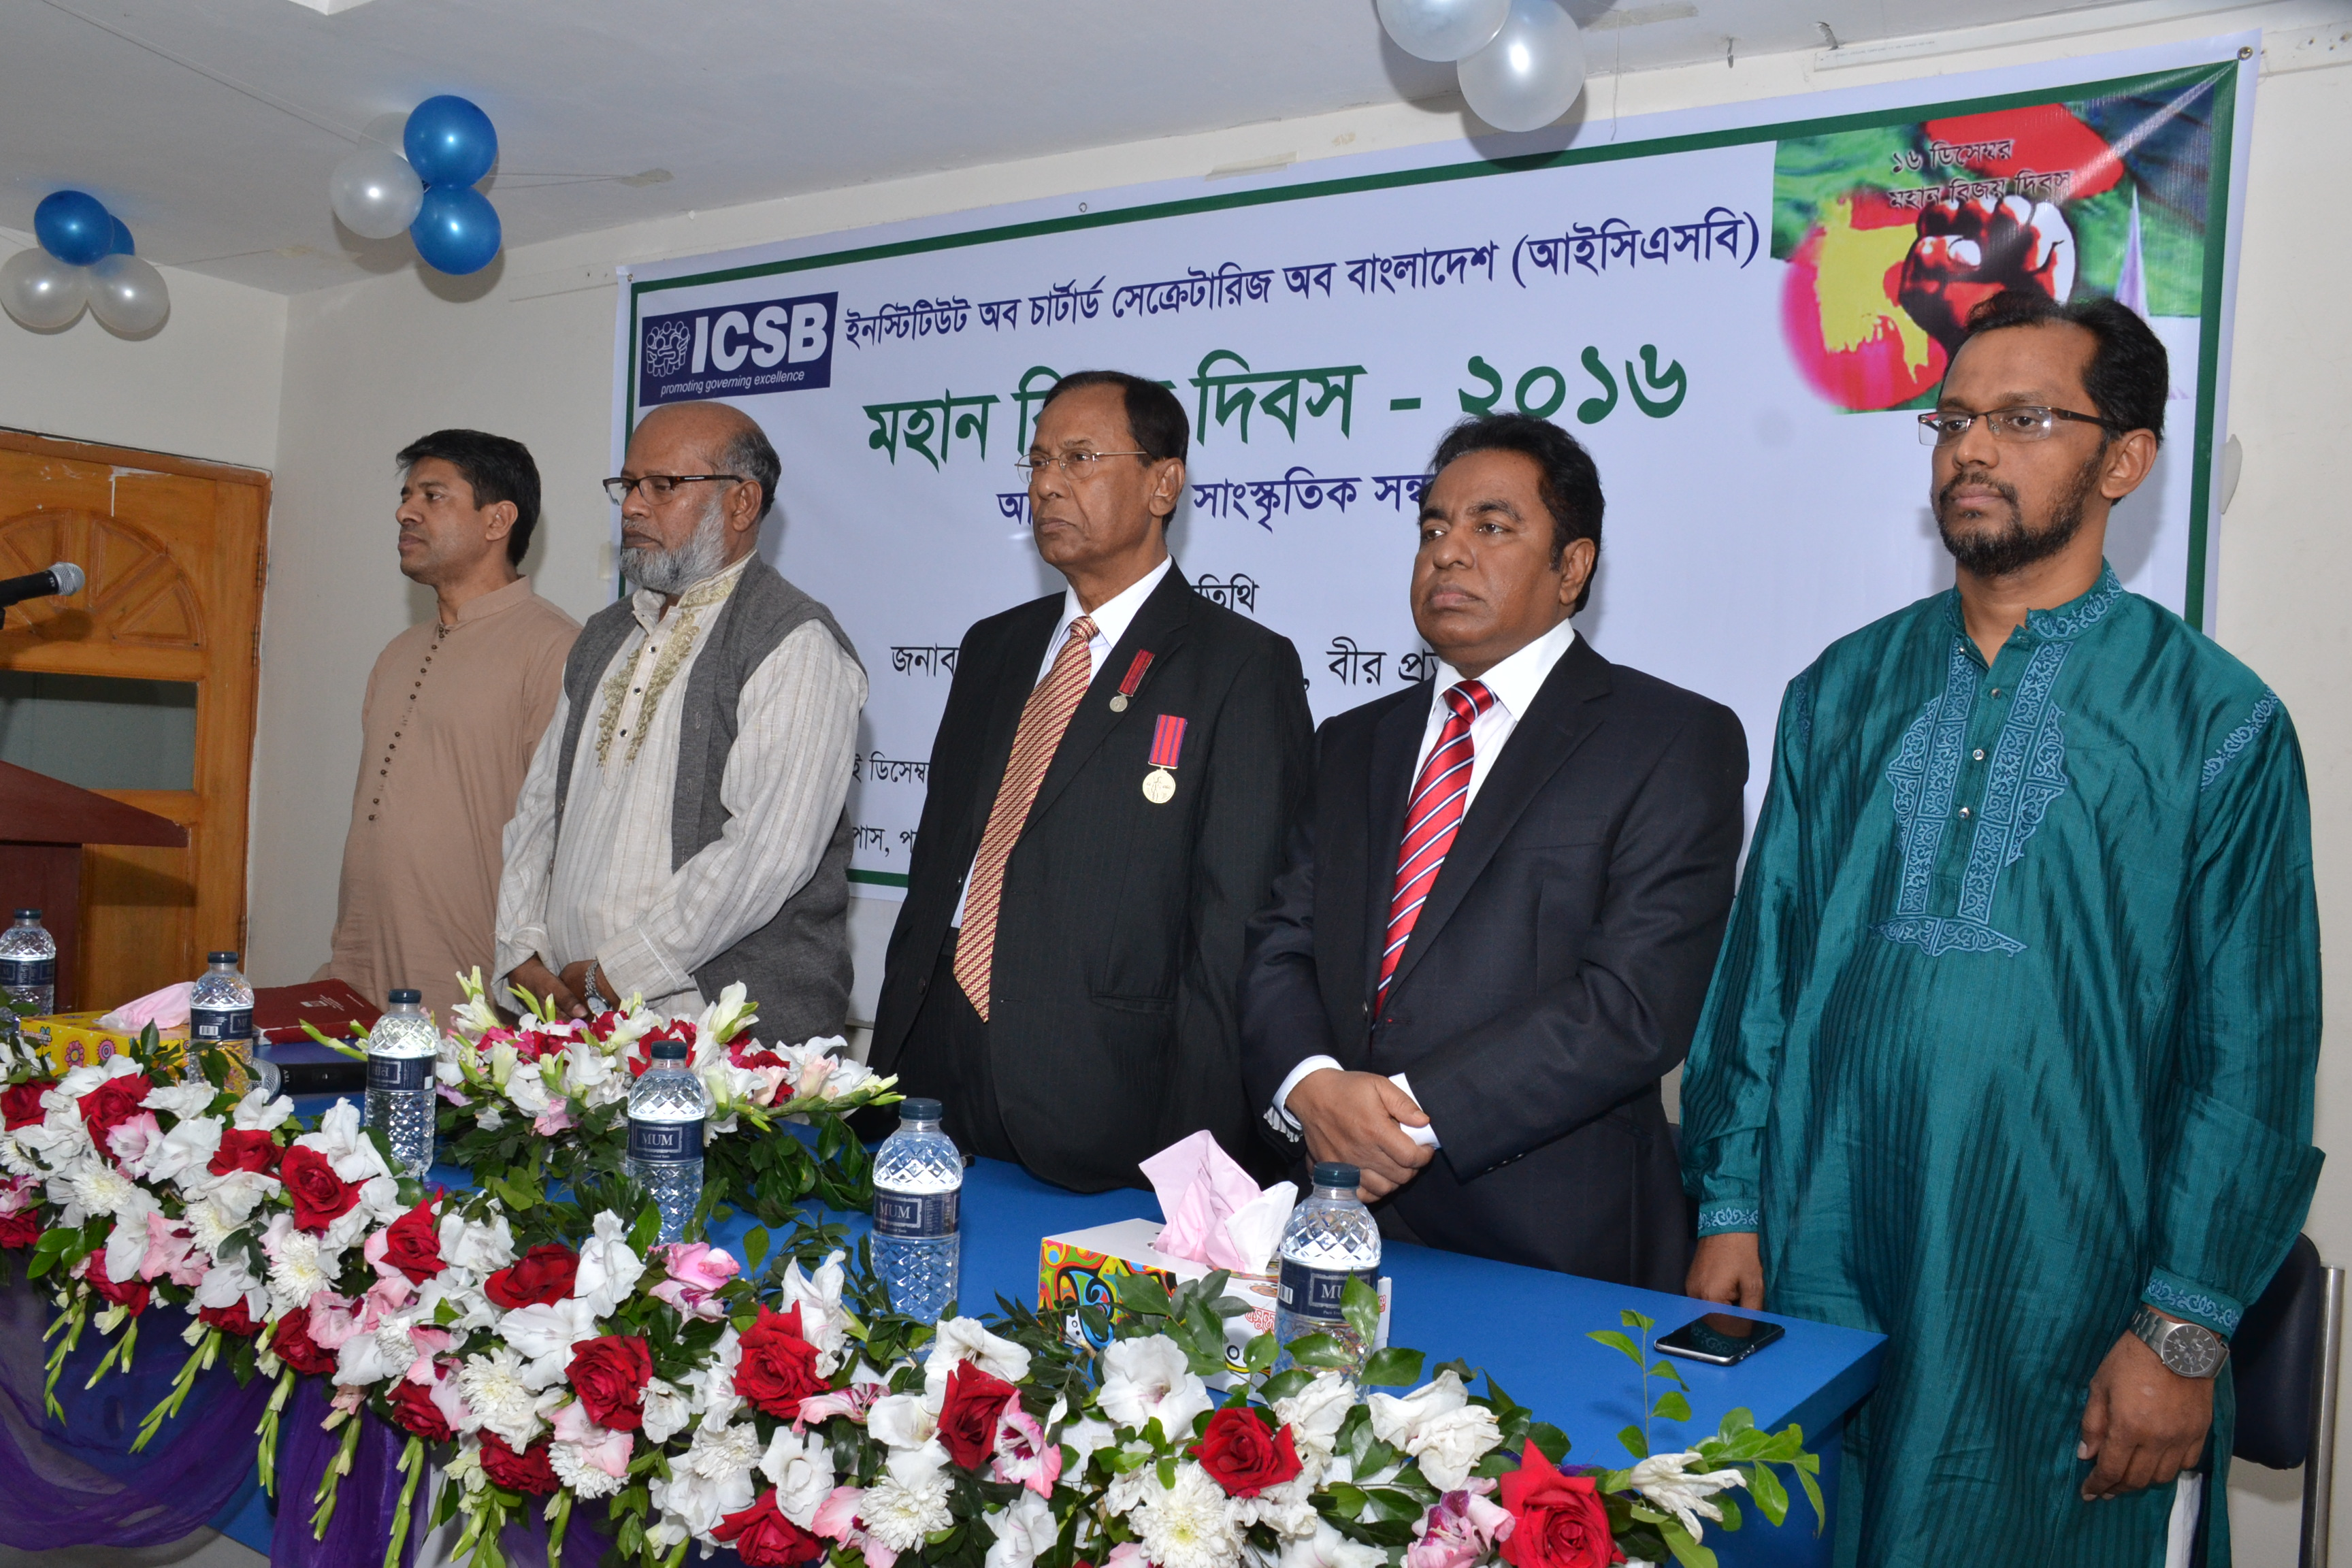 """Celebration of the """"Victory Day 2016"""" at ICSB Campus"""